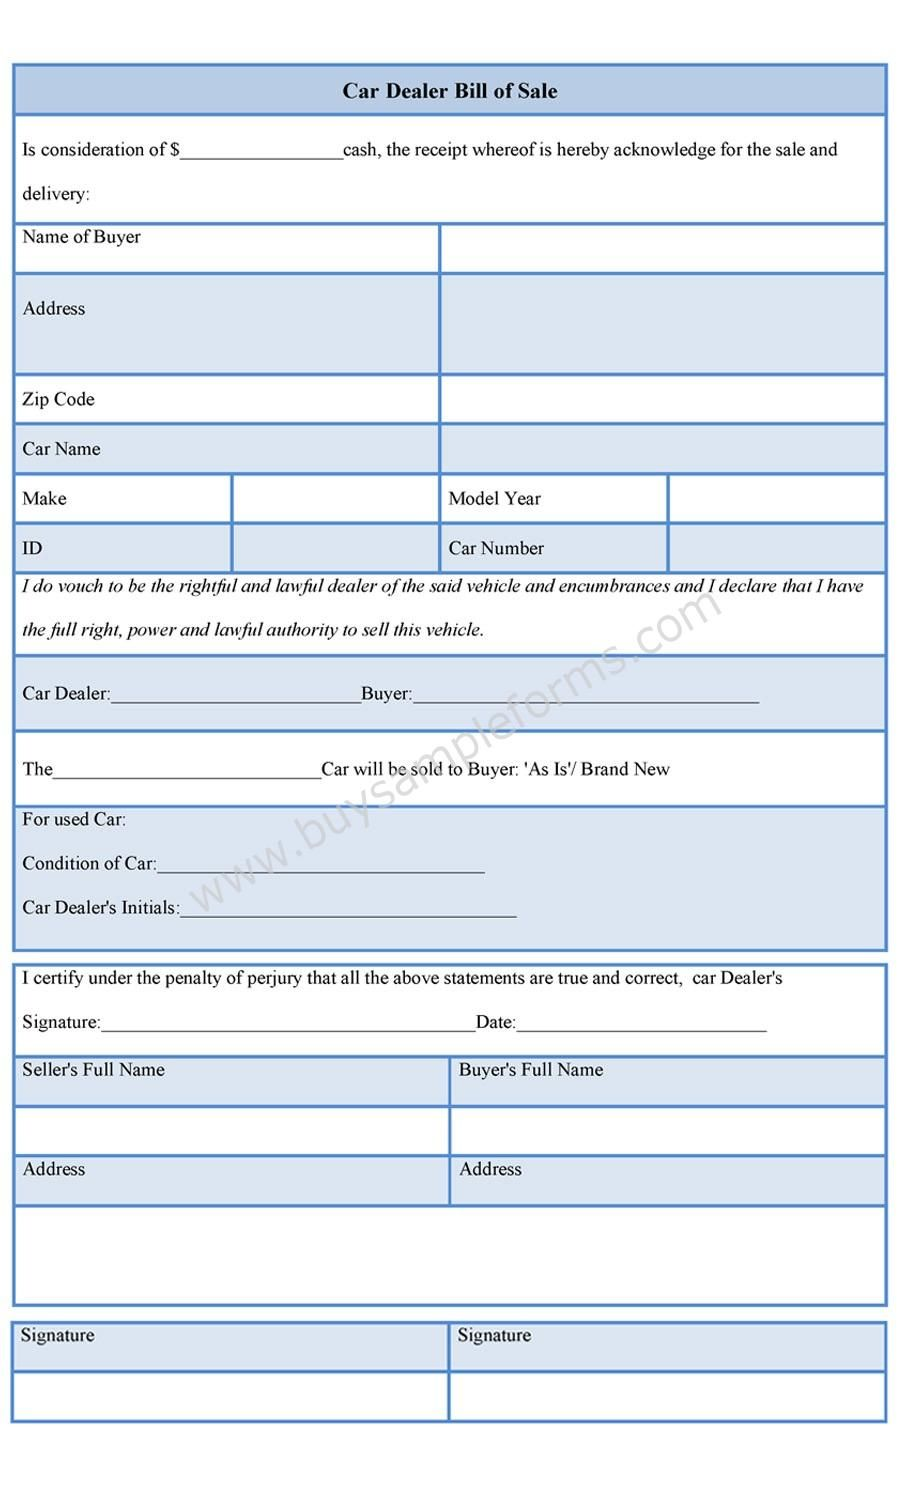 Download sample Car Dealer Bill of Sale template is available – Ms Word for Sale